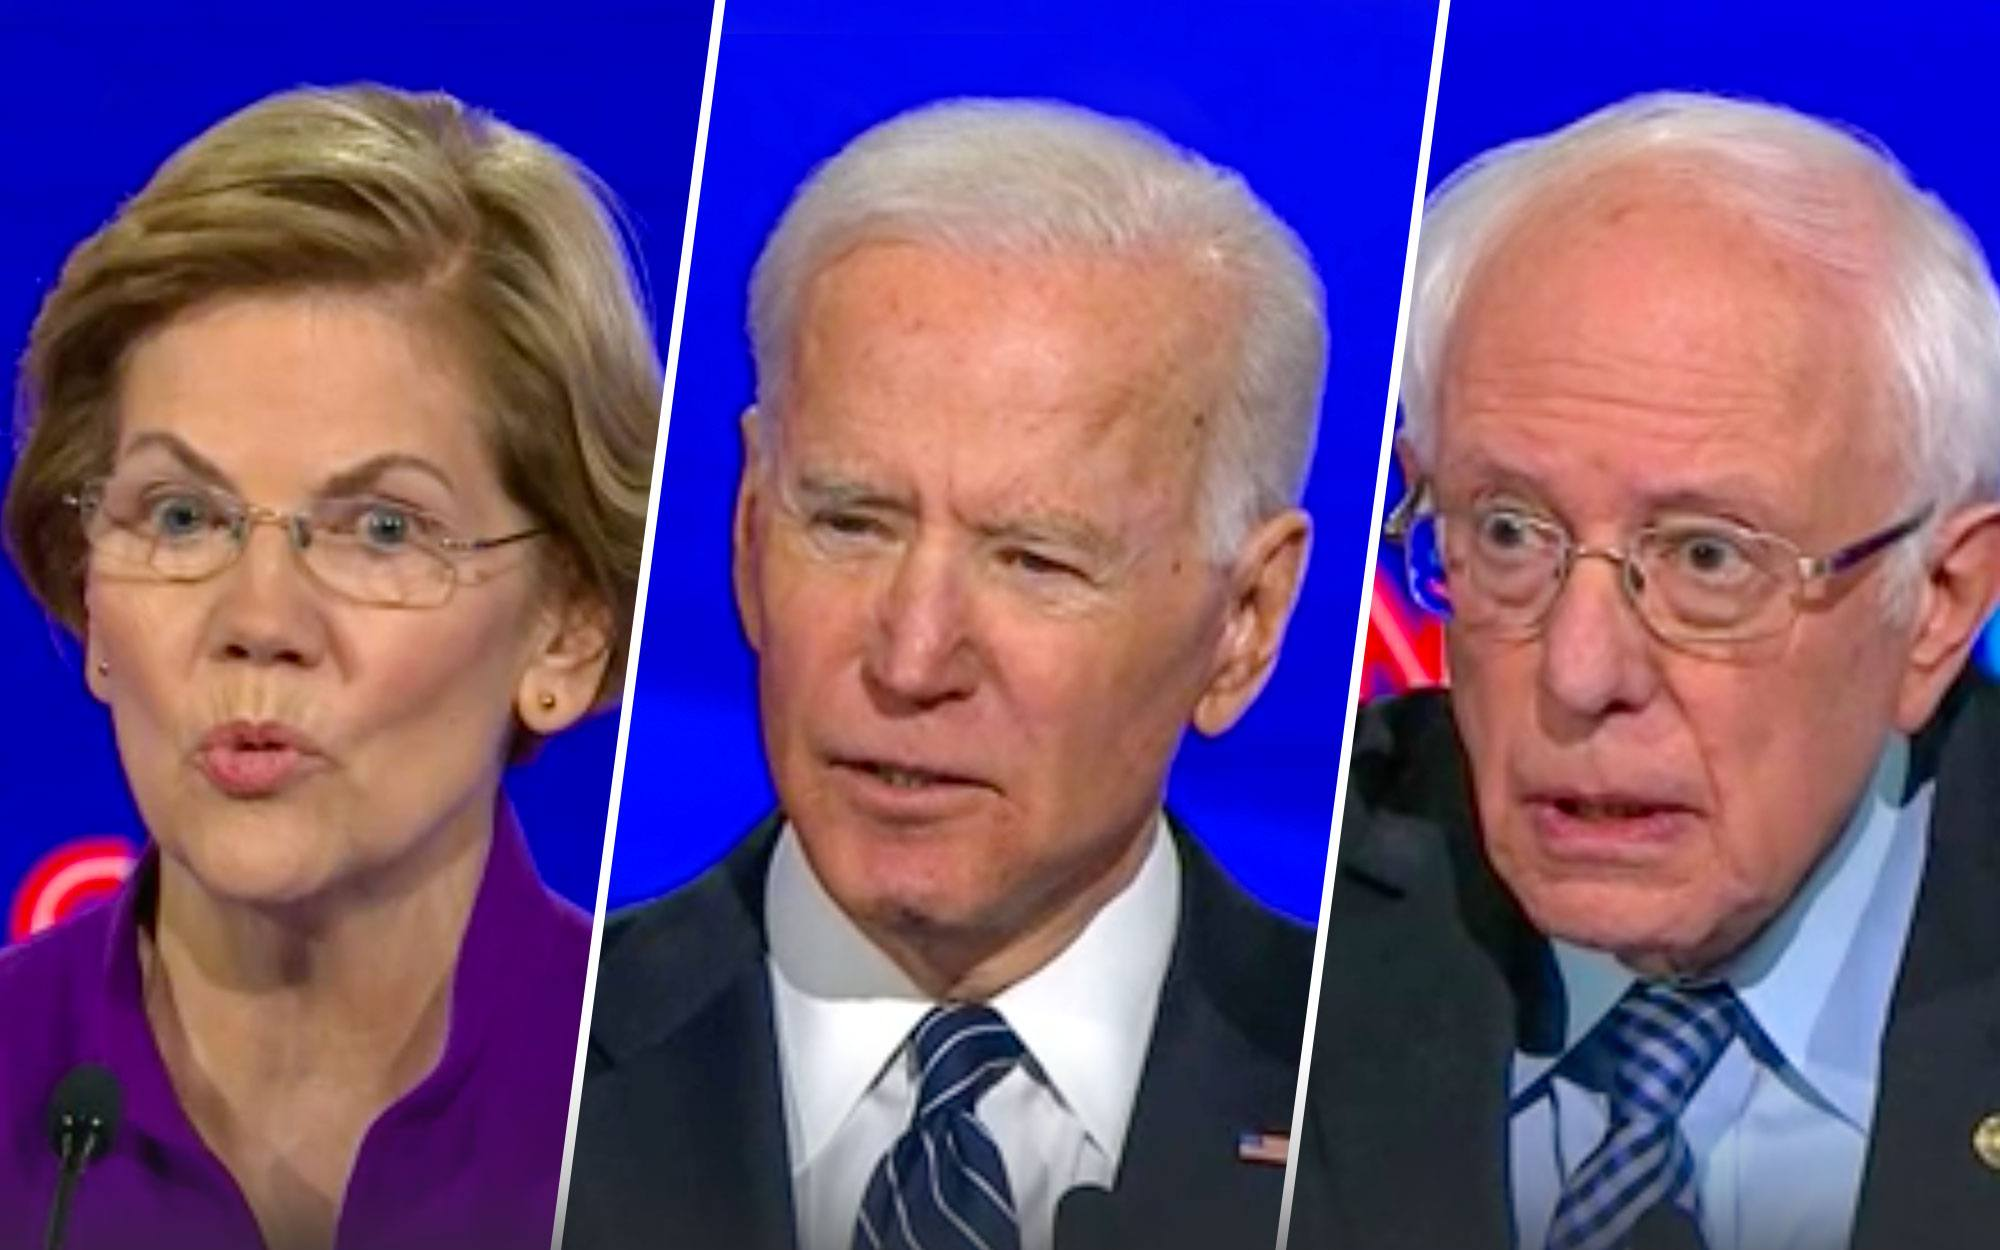 Sanders-Warren Tensions Flare at Democratic Debate, as Biden Fends Off Iraq War Attacks